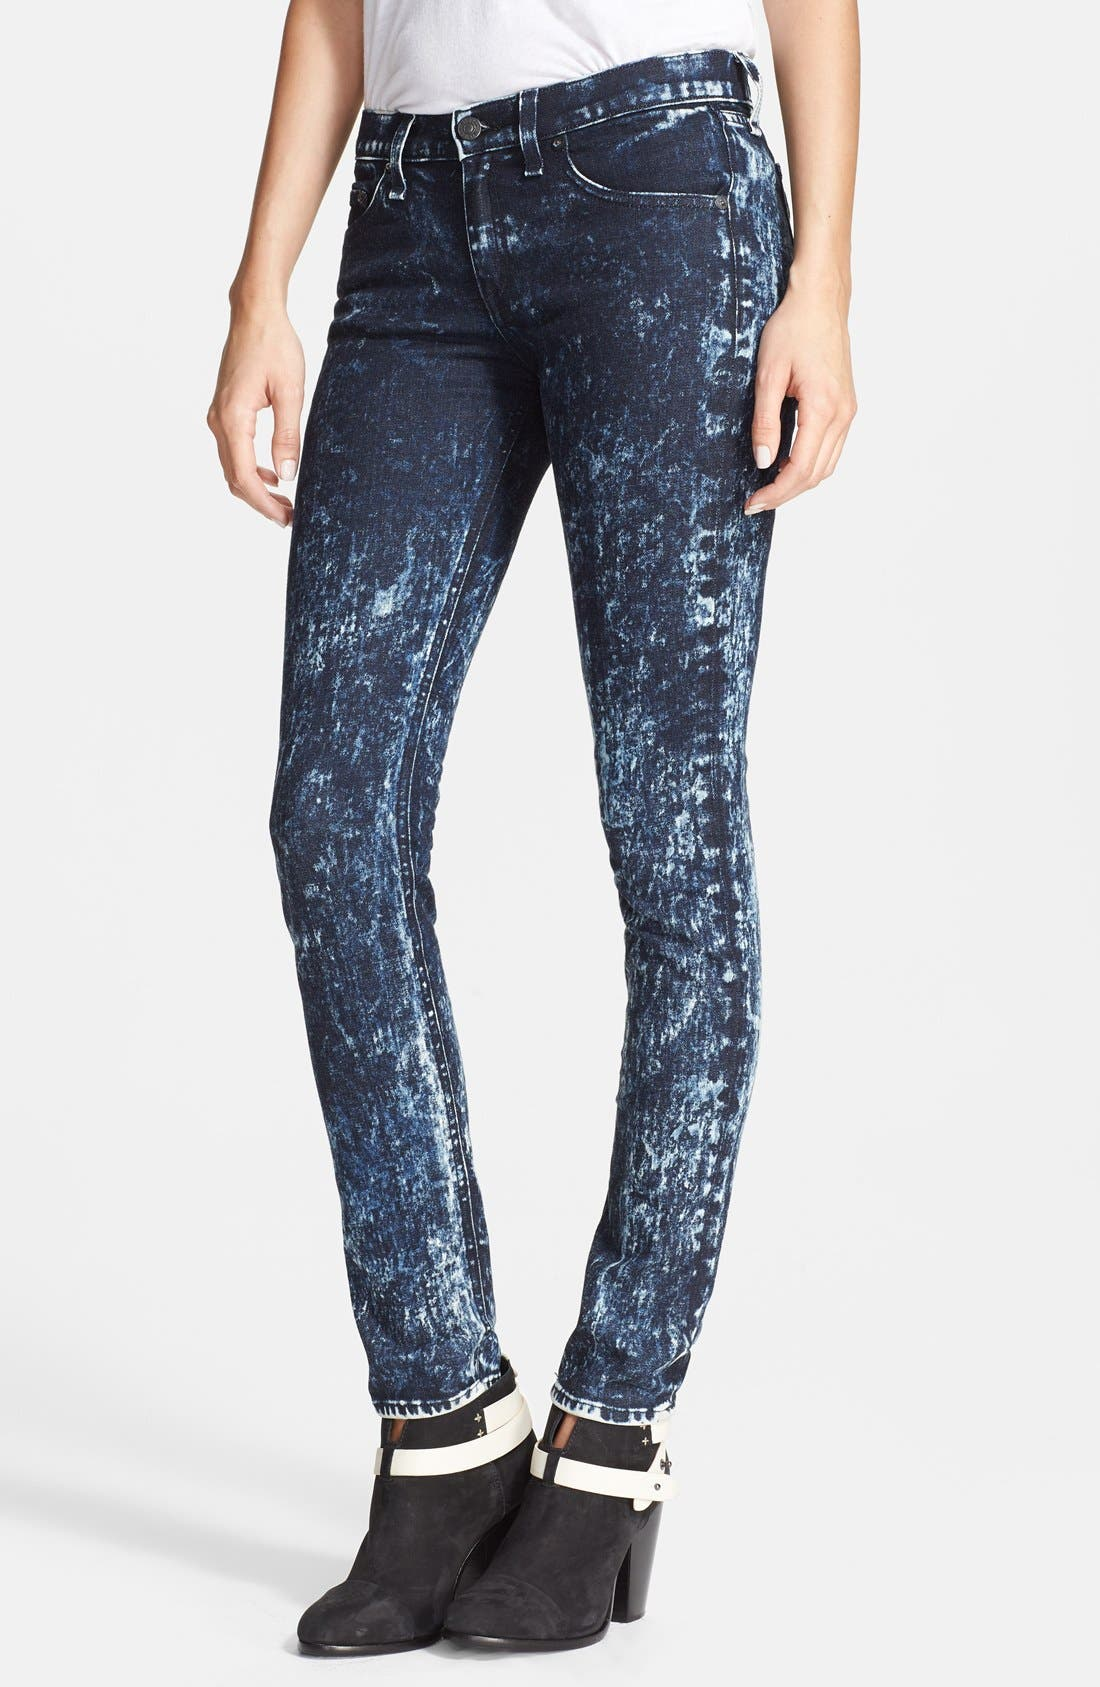 Alternate Image 1 Selected - rag & bone/JEAN Stretch Skinny Jeans (Acid Wash/Black/White)